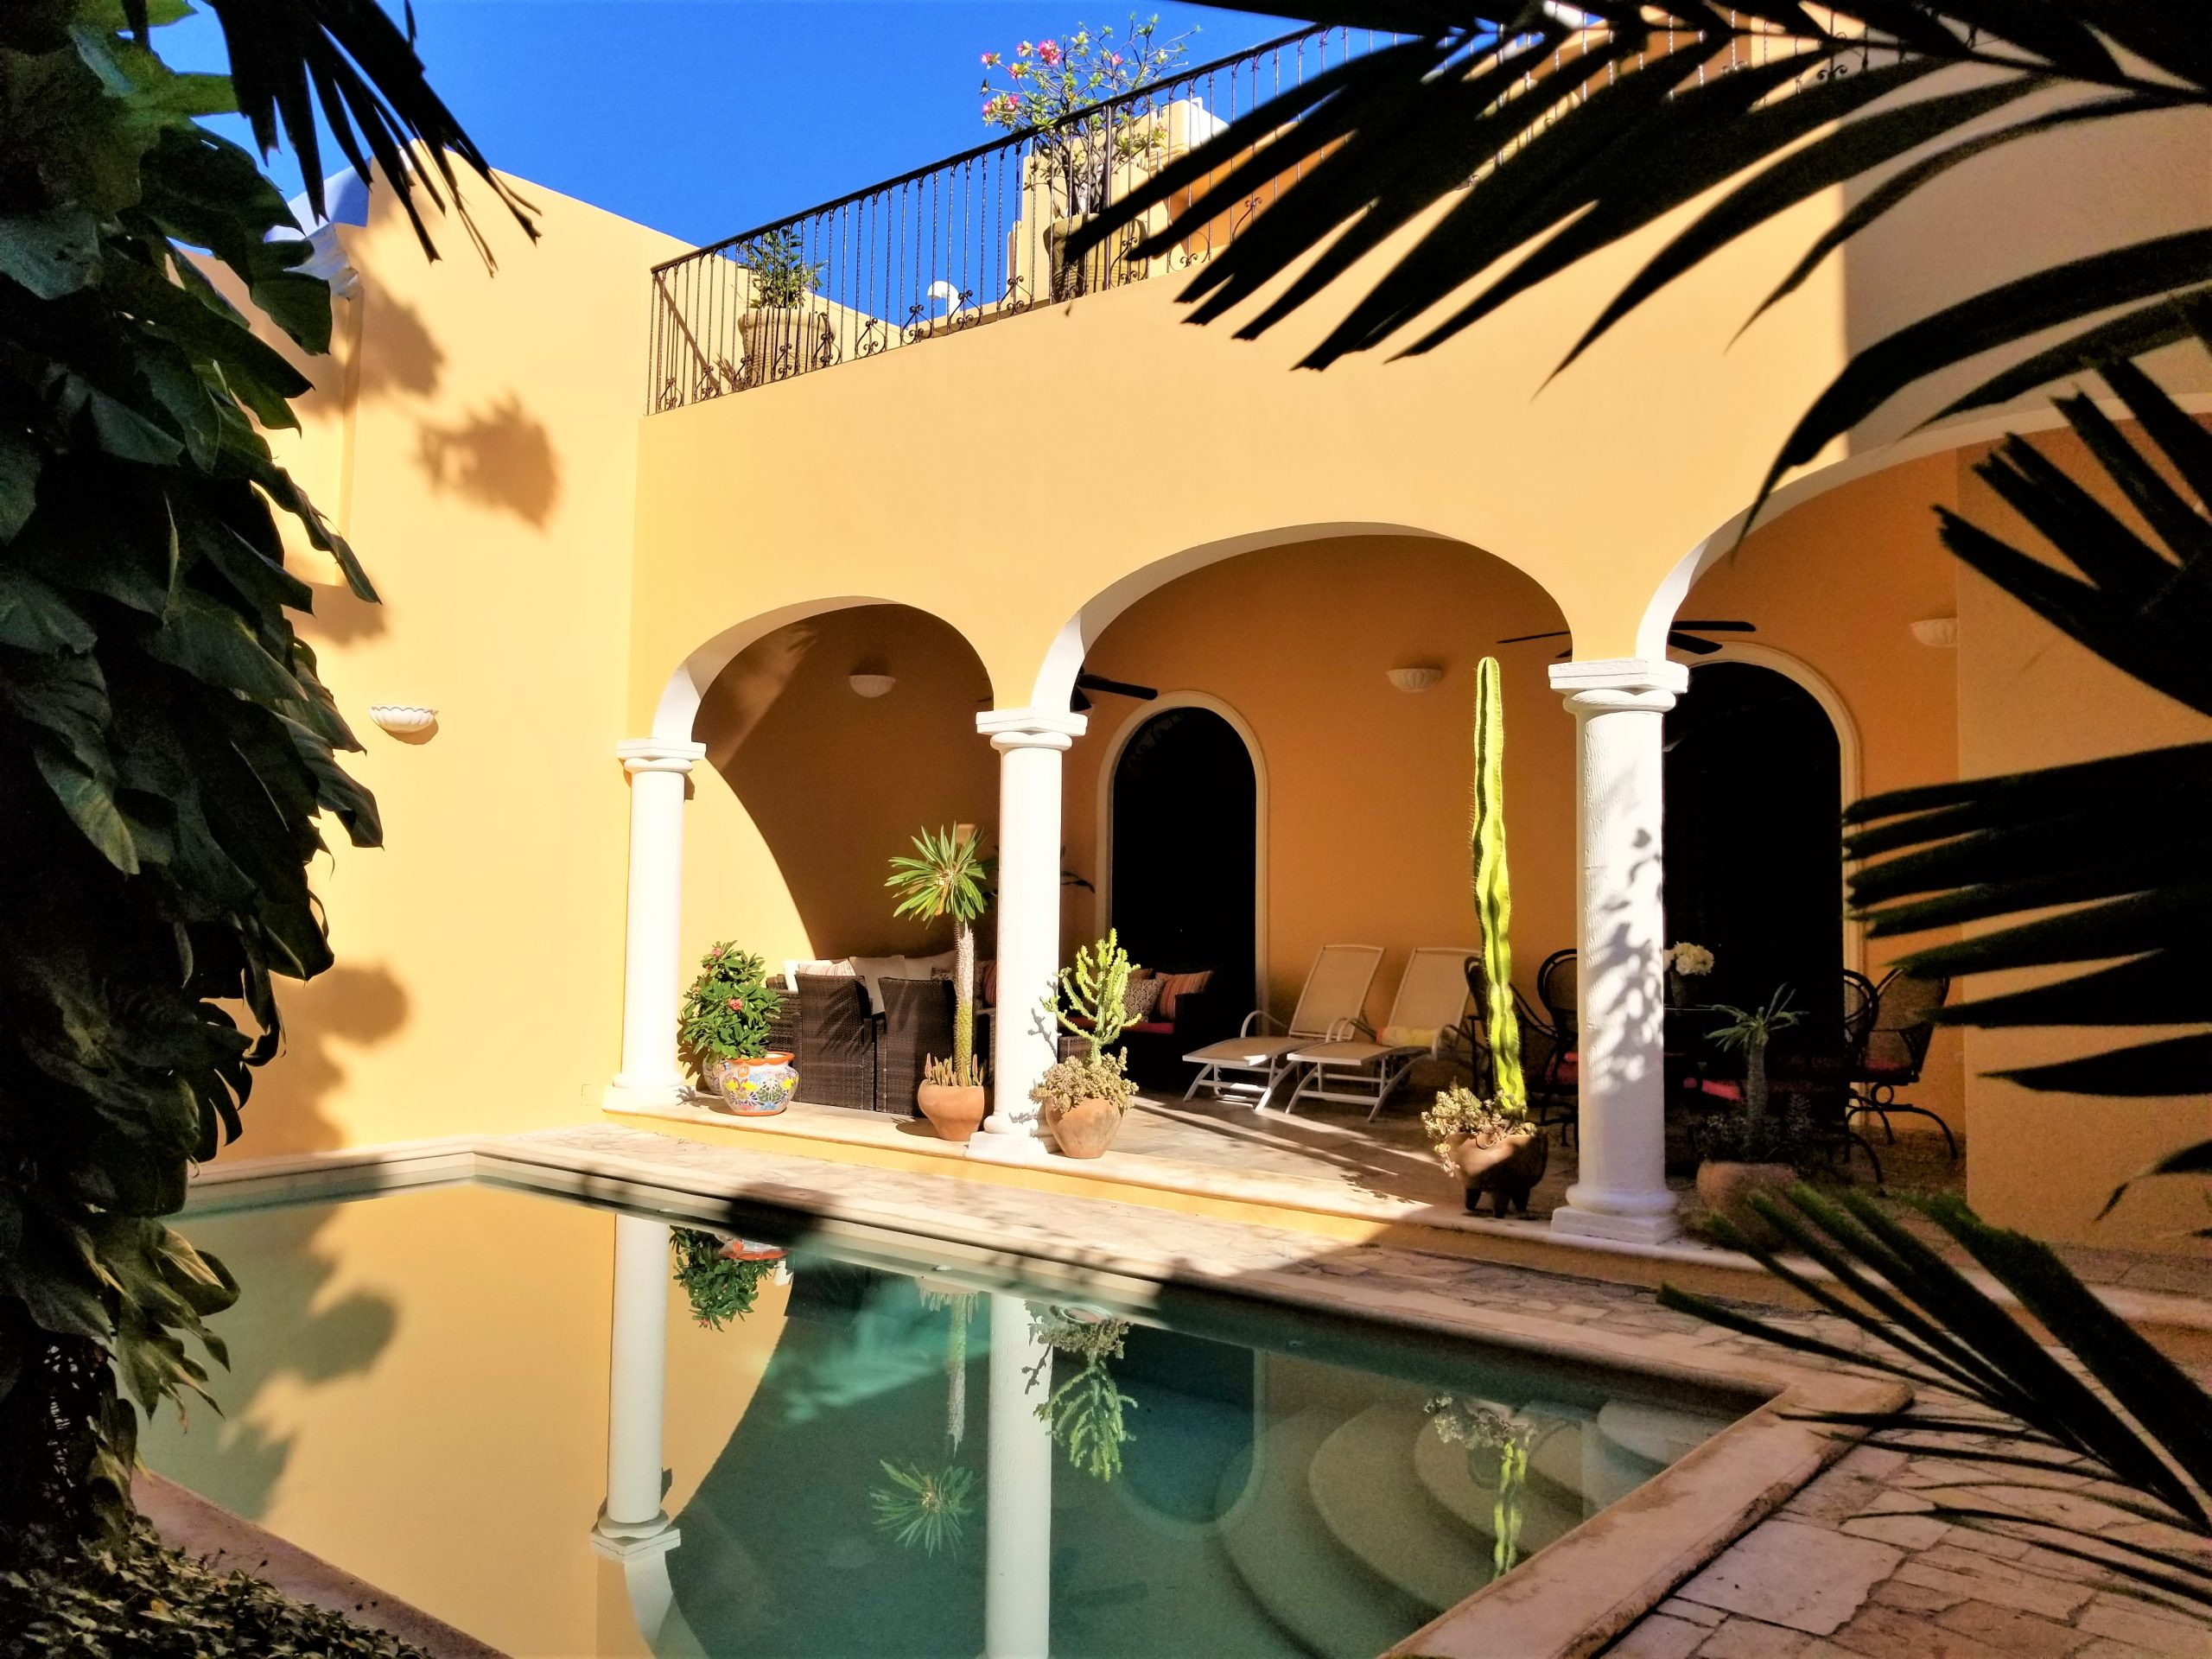 Private pool and backyeard of casa santa lucia in merida